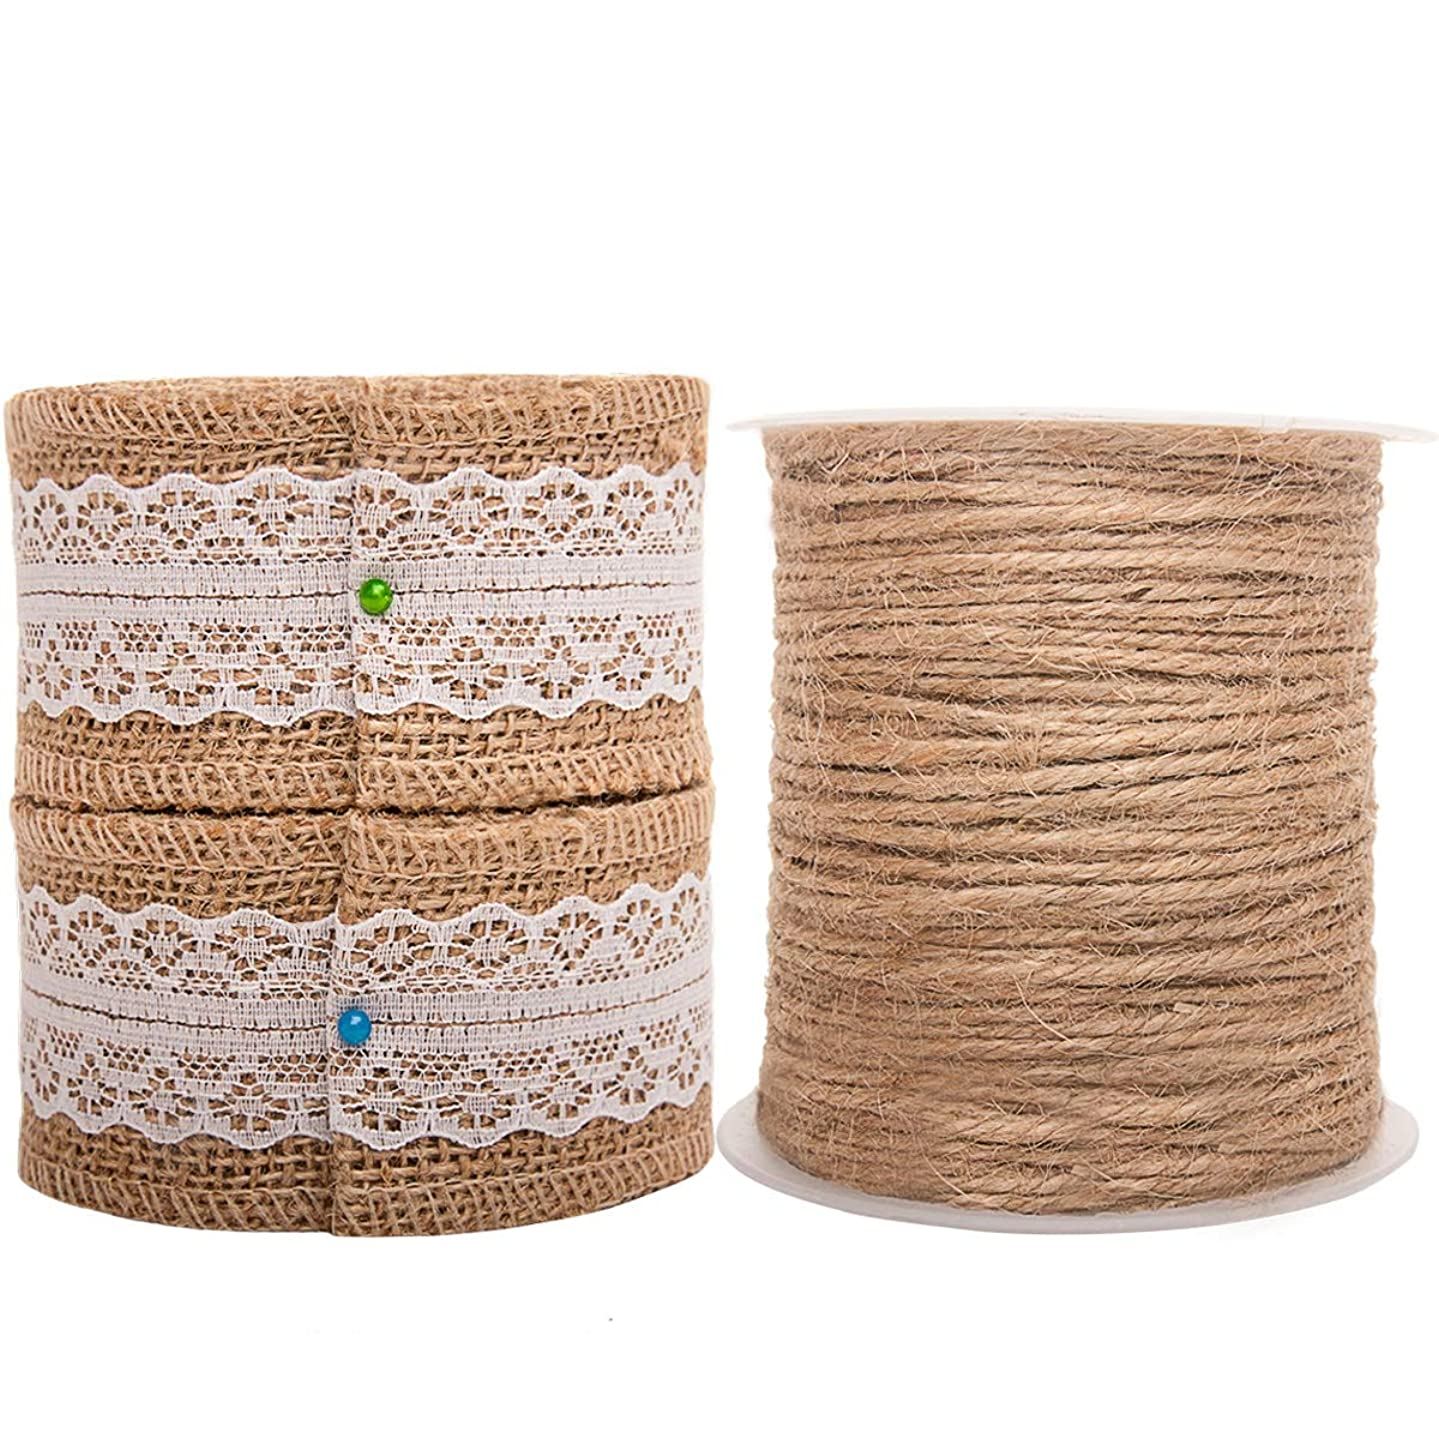 Burlap Ribbon Twine Set for Crafts Wired 2 Inch Gift Ribbon Jute String on Spool for Rustic Wedding Party Decoration